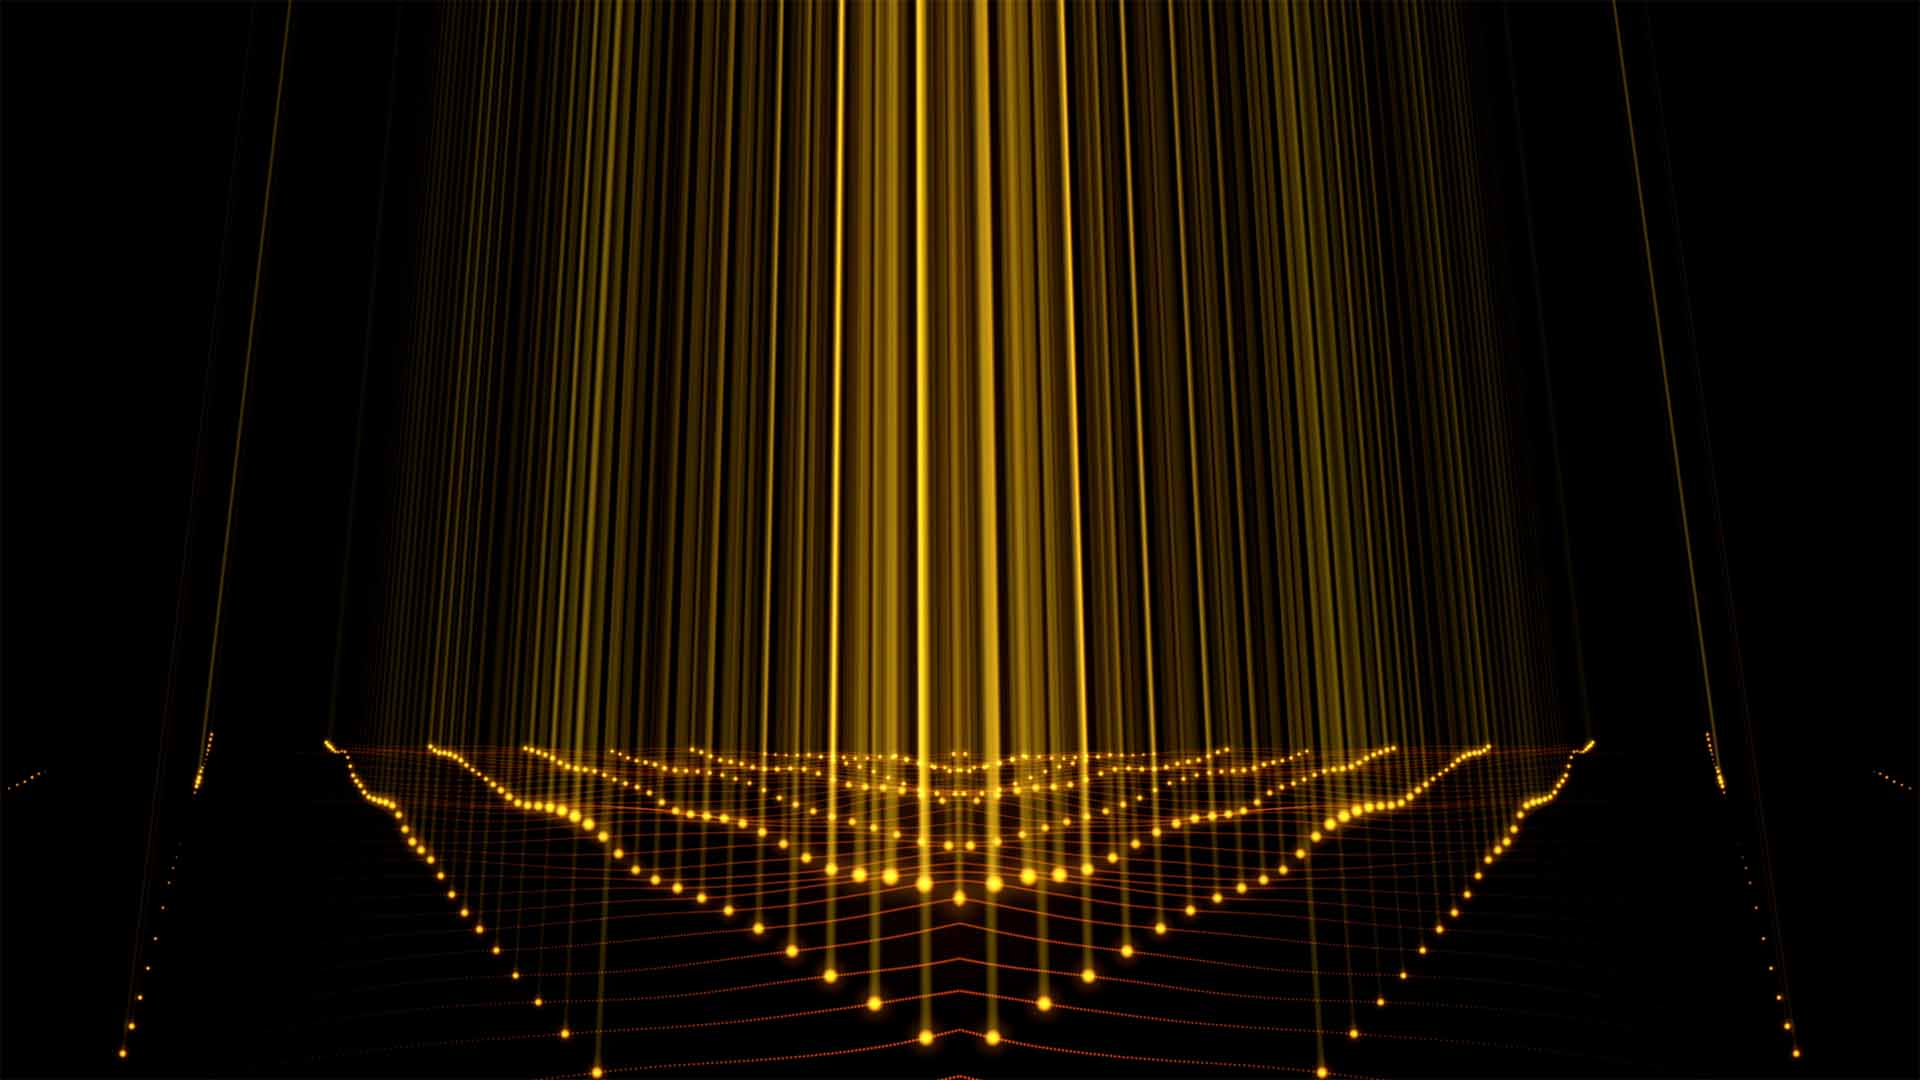 Sun_Gate_Rays_Visuals_Video_Footage_3D_Animation_VJ_Loop